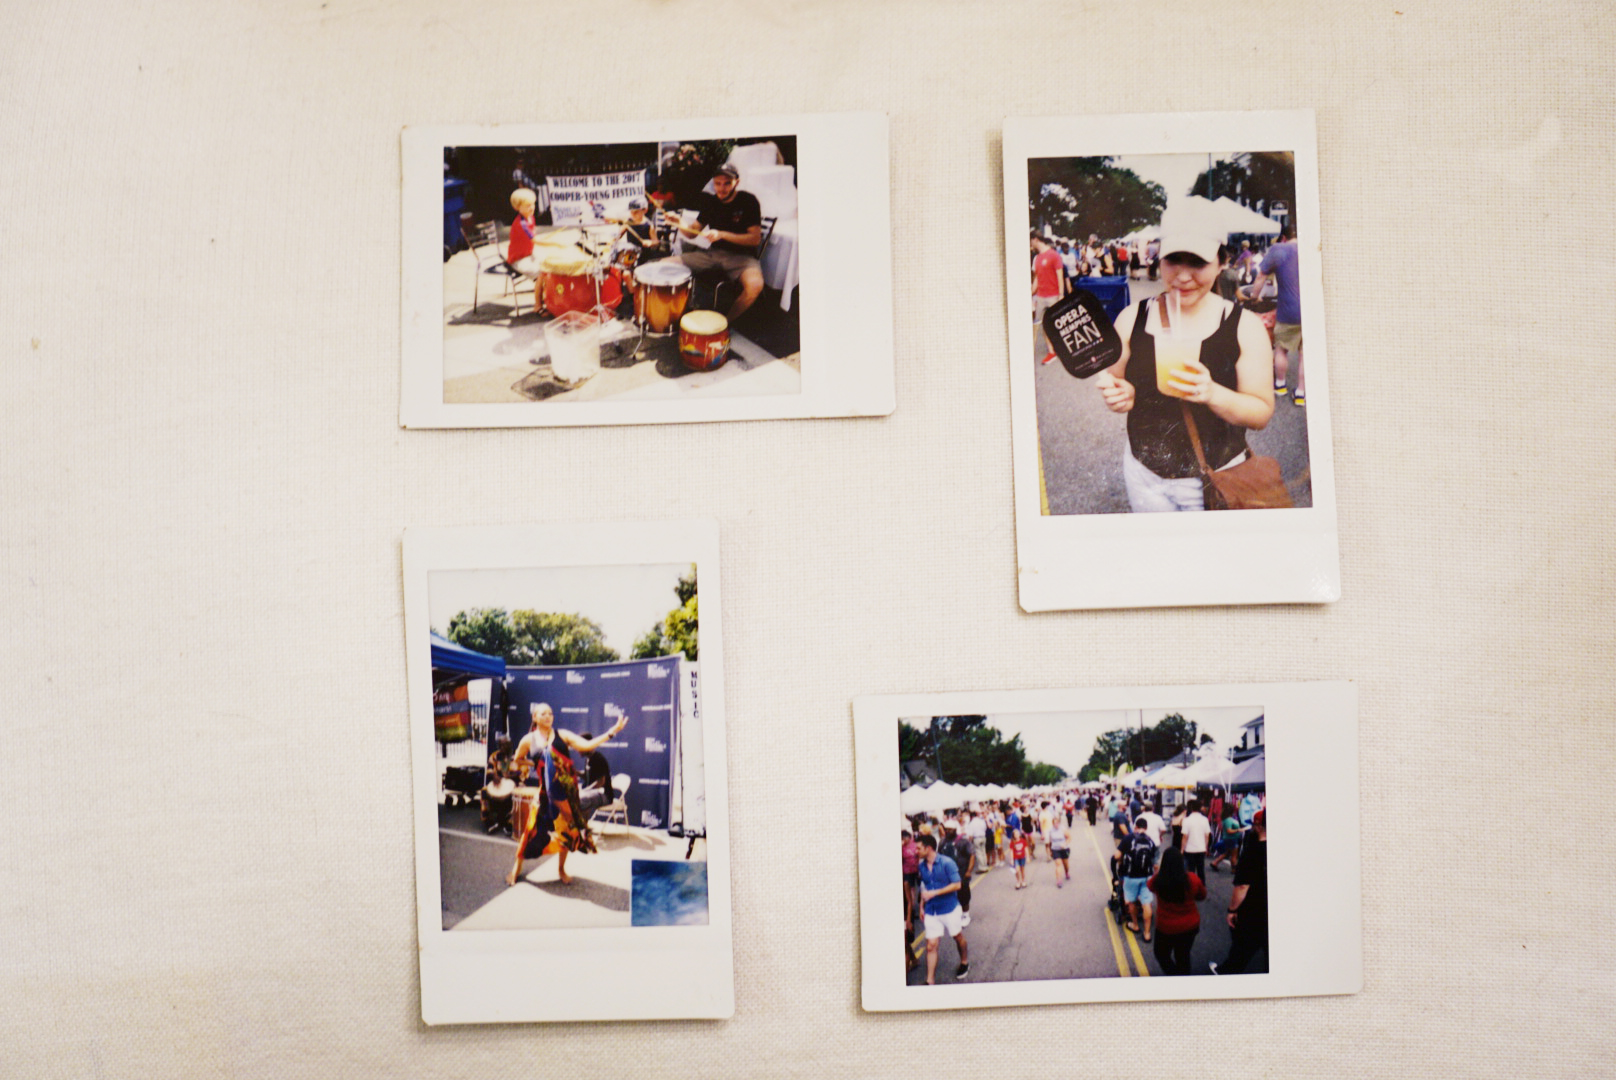 My 4 Instax camera moments from the day.